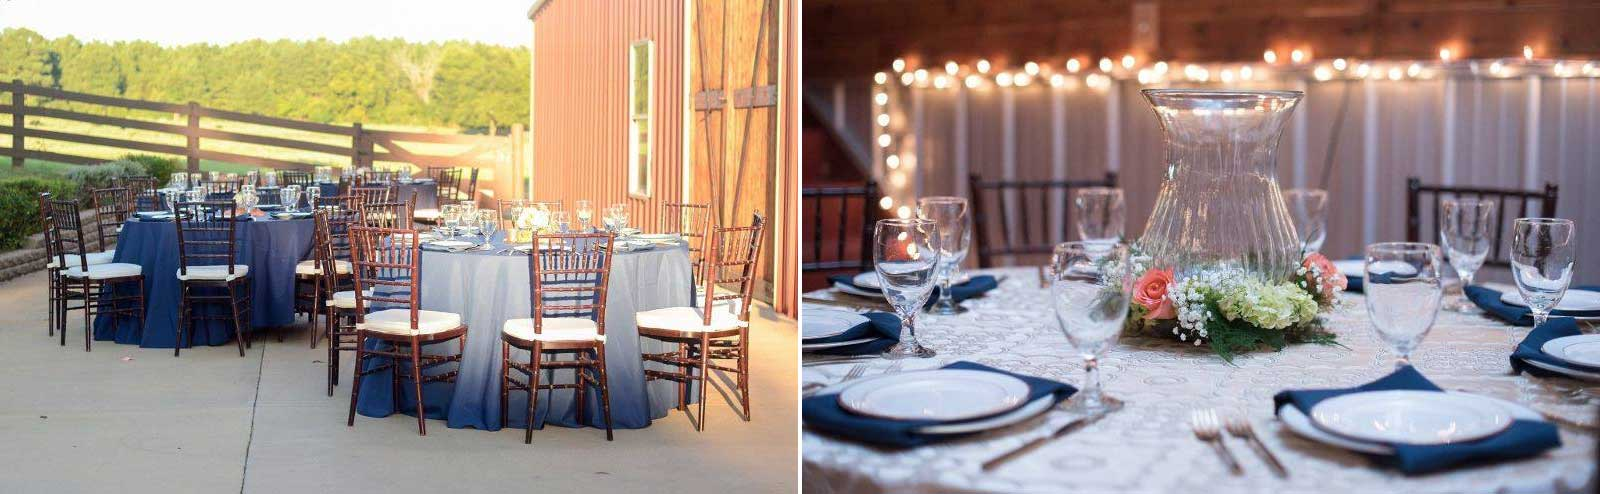 renting tables and chairs for wedding folding chair inventor all american party tent rentals rental even special event in east texas